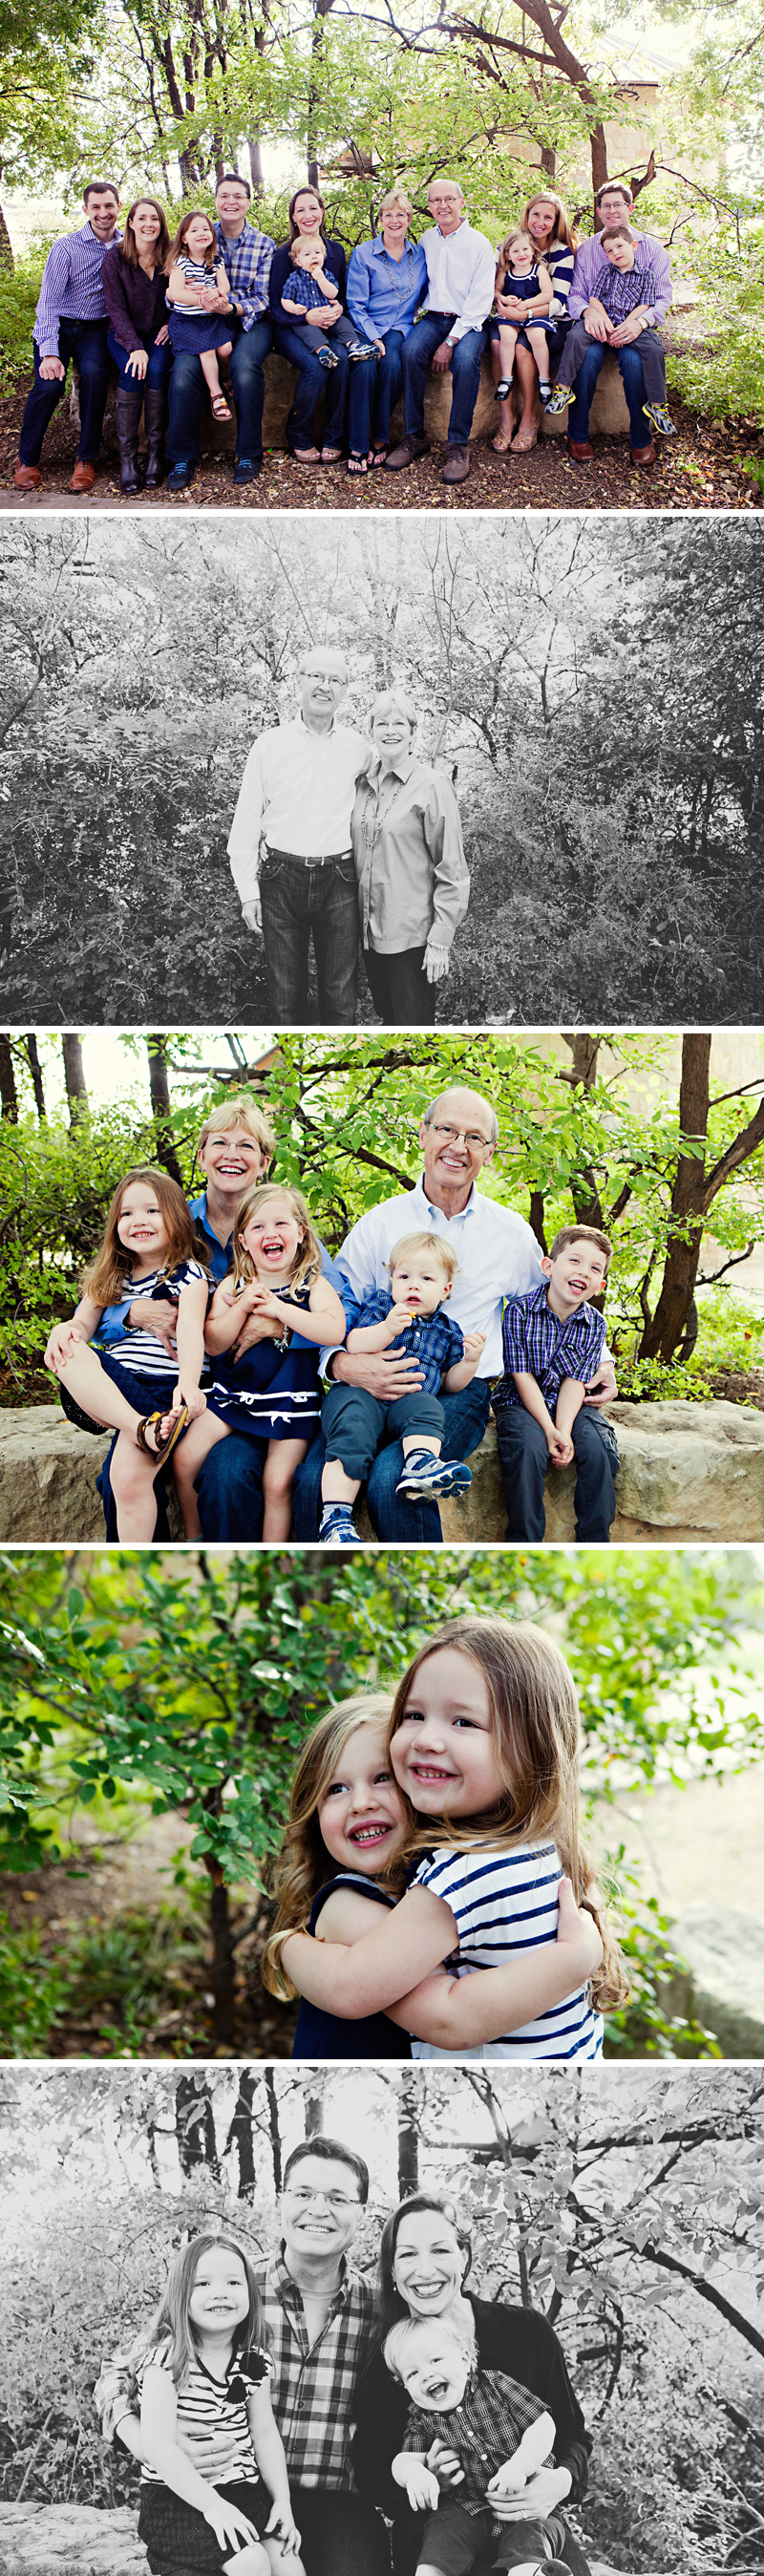 Dallas-Family-Photographerc031